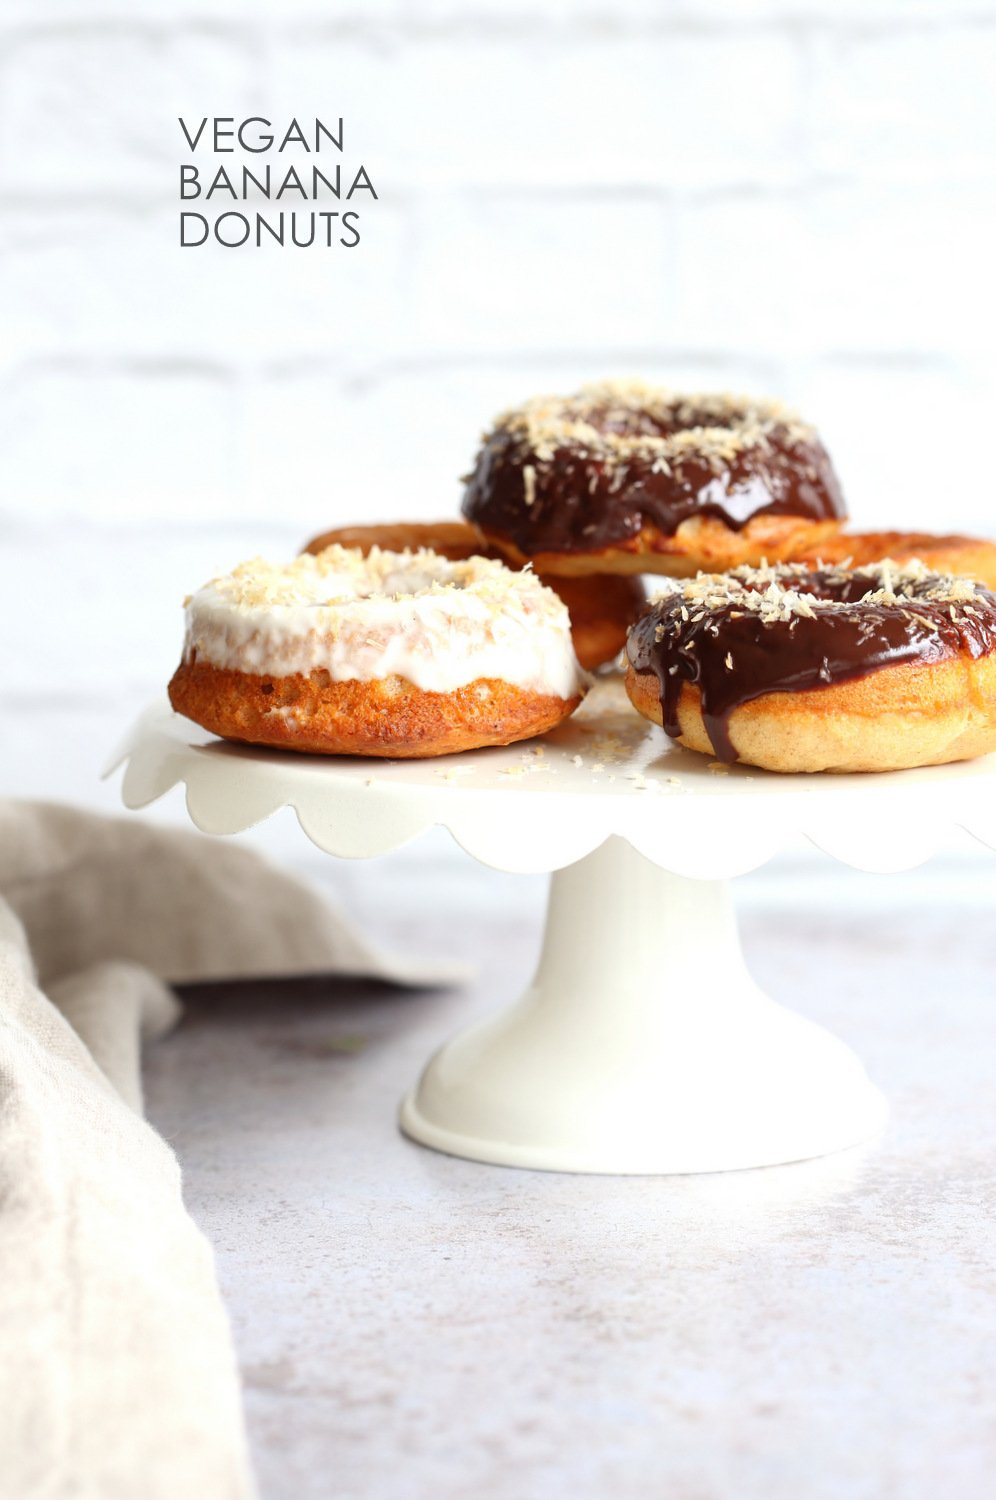 Vegan Banana Donuts Recipe ? Baked Banana Bread Donut